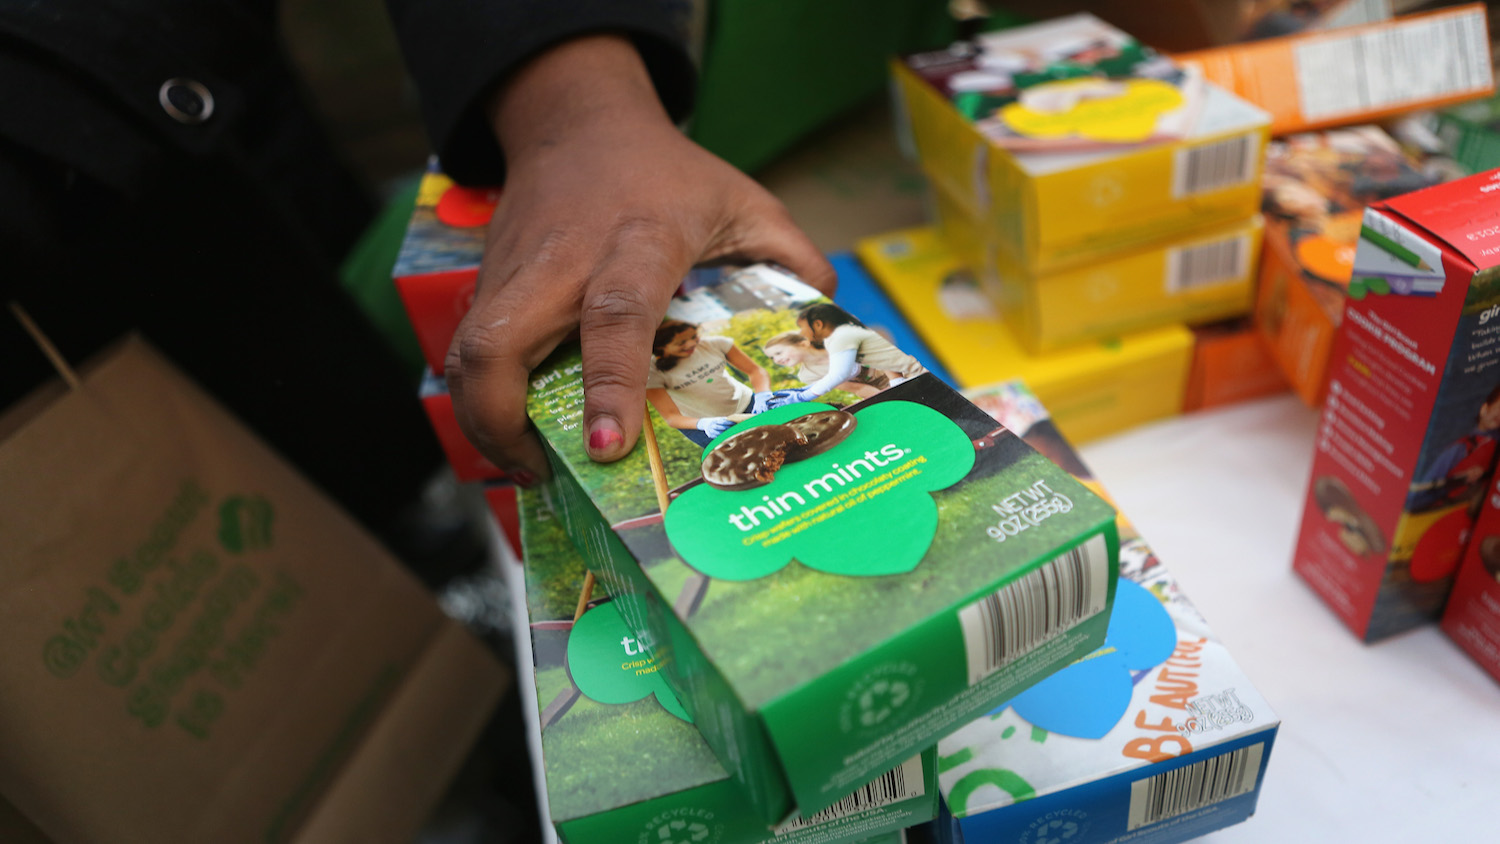 A Girl Scouts Troop for Homeless Girls Is Holding a Cookie Sale